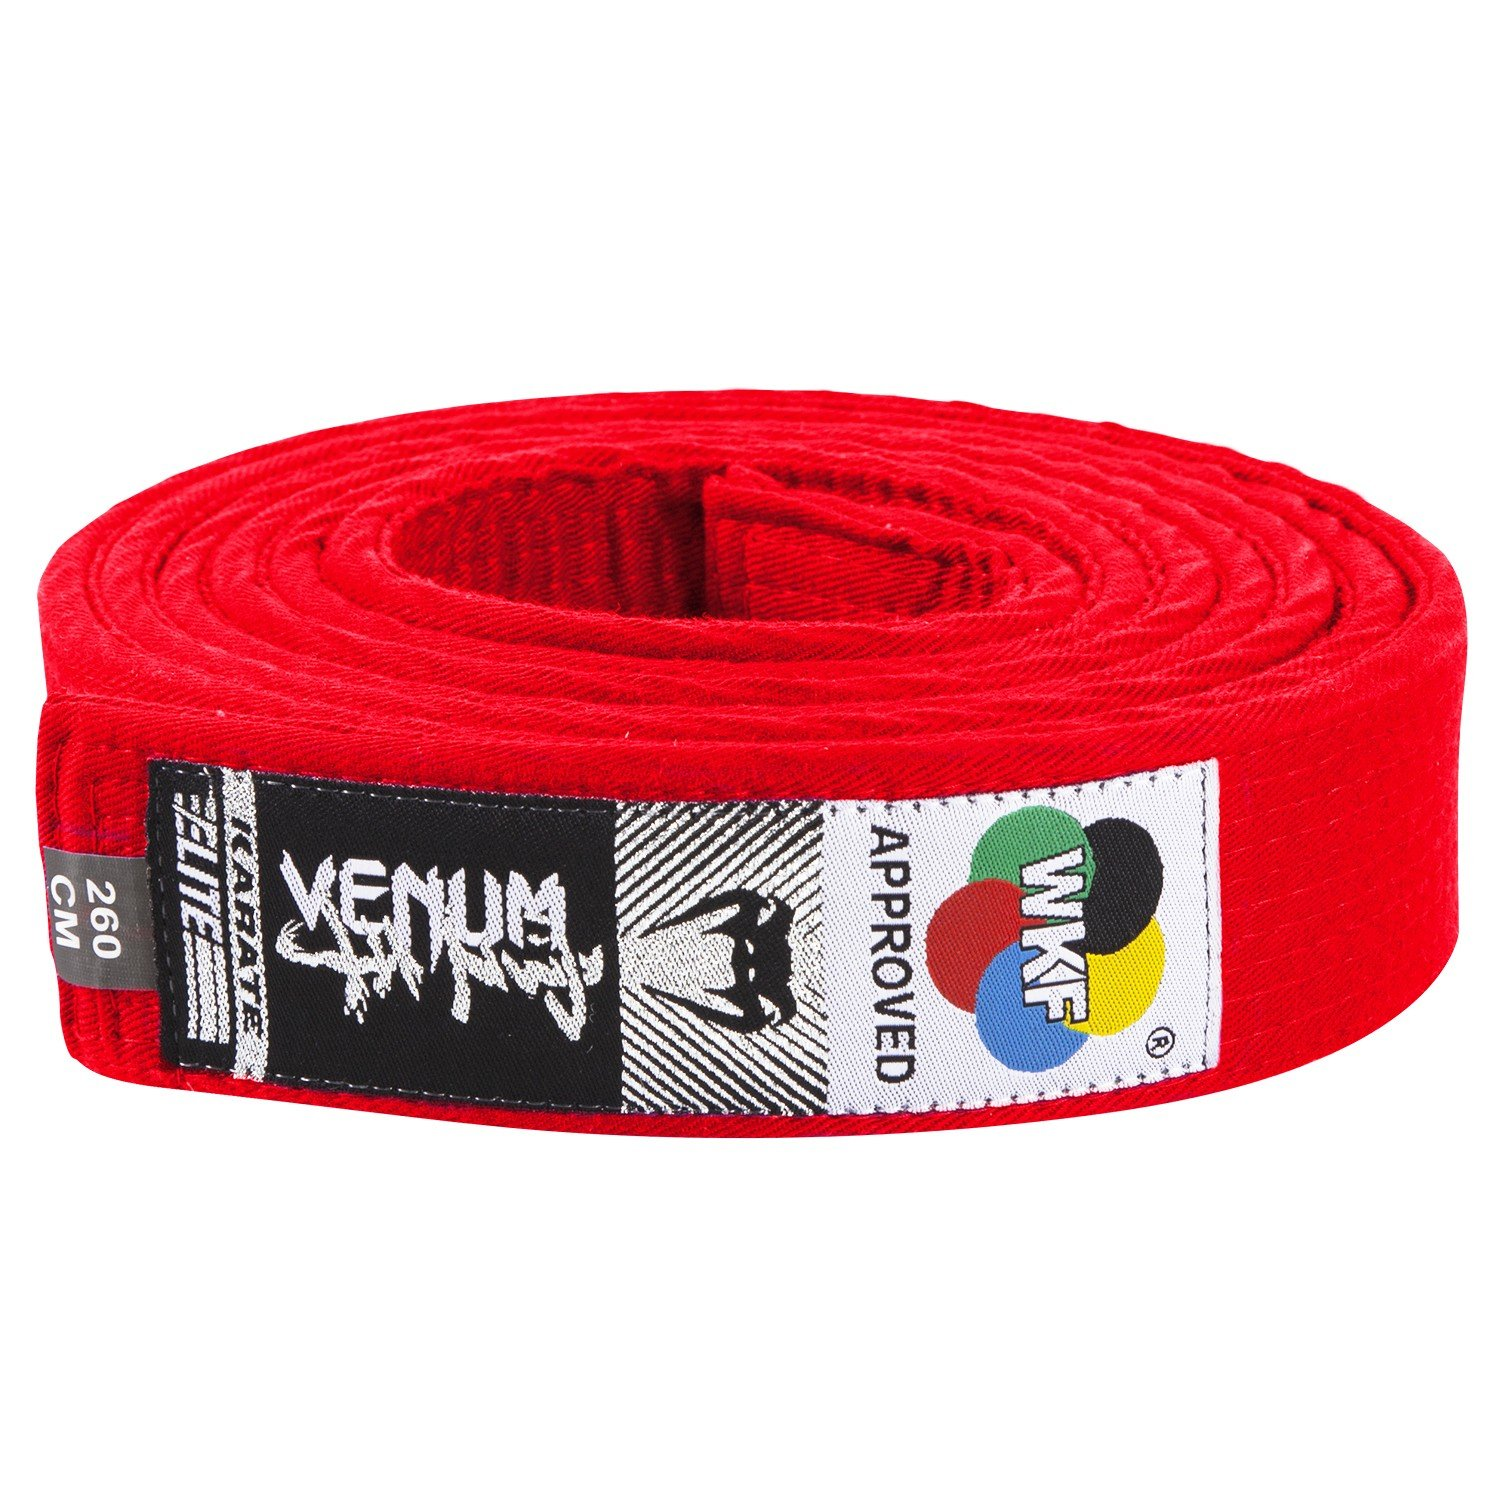 Venum Karate Belt - Cinturón de Karate, Color Rojo, 260 cm US-VENUM-1308